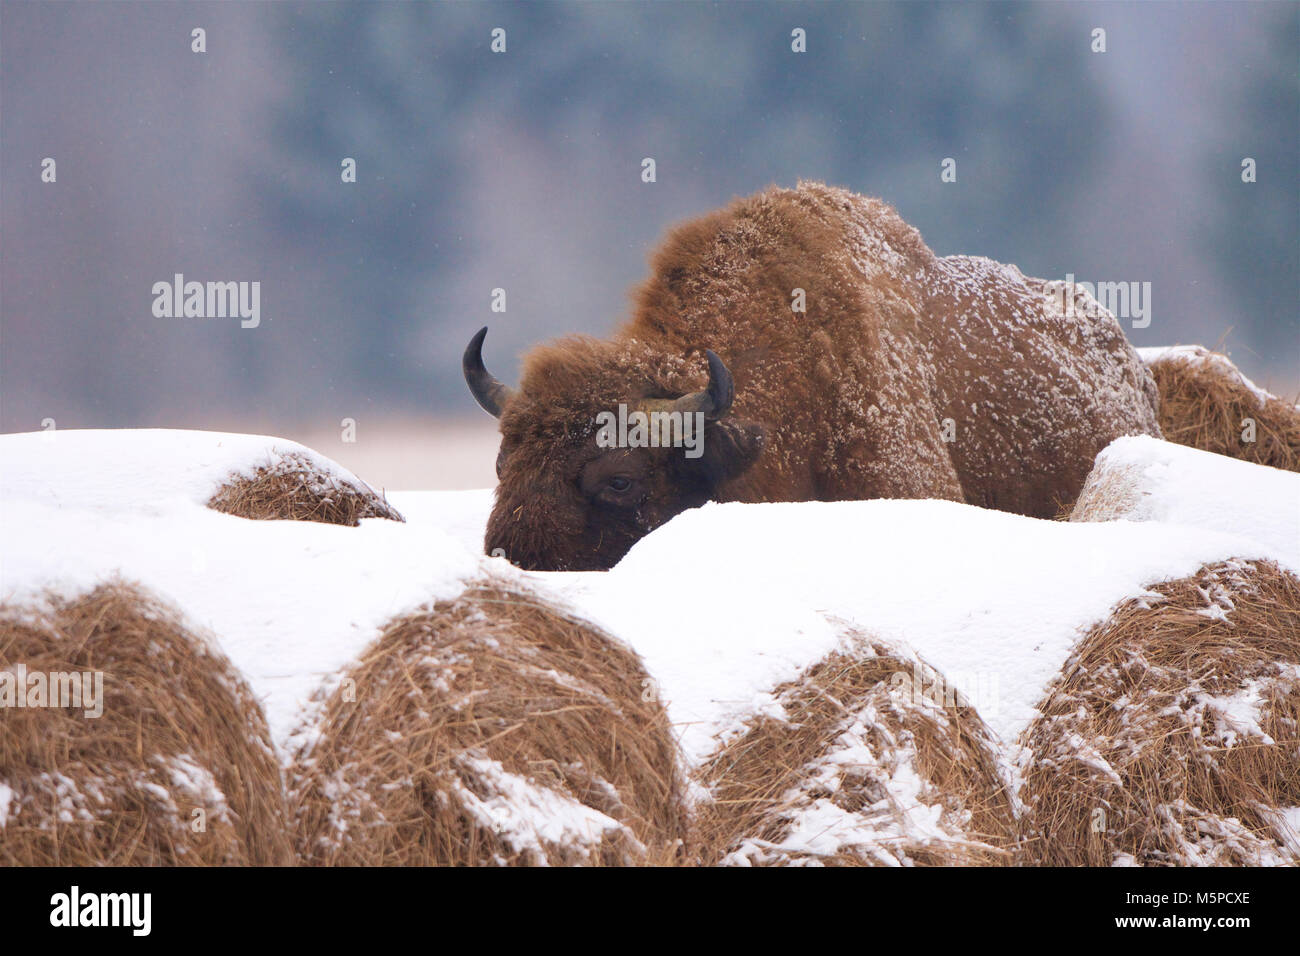 A full-grown European Bison behind some hay bales, in a snowed wintery landscape, in Bialowieza, in Poland. The Stock Photo